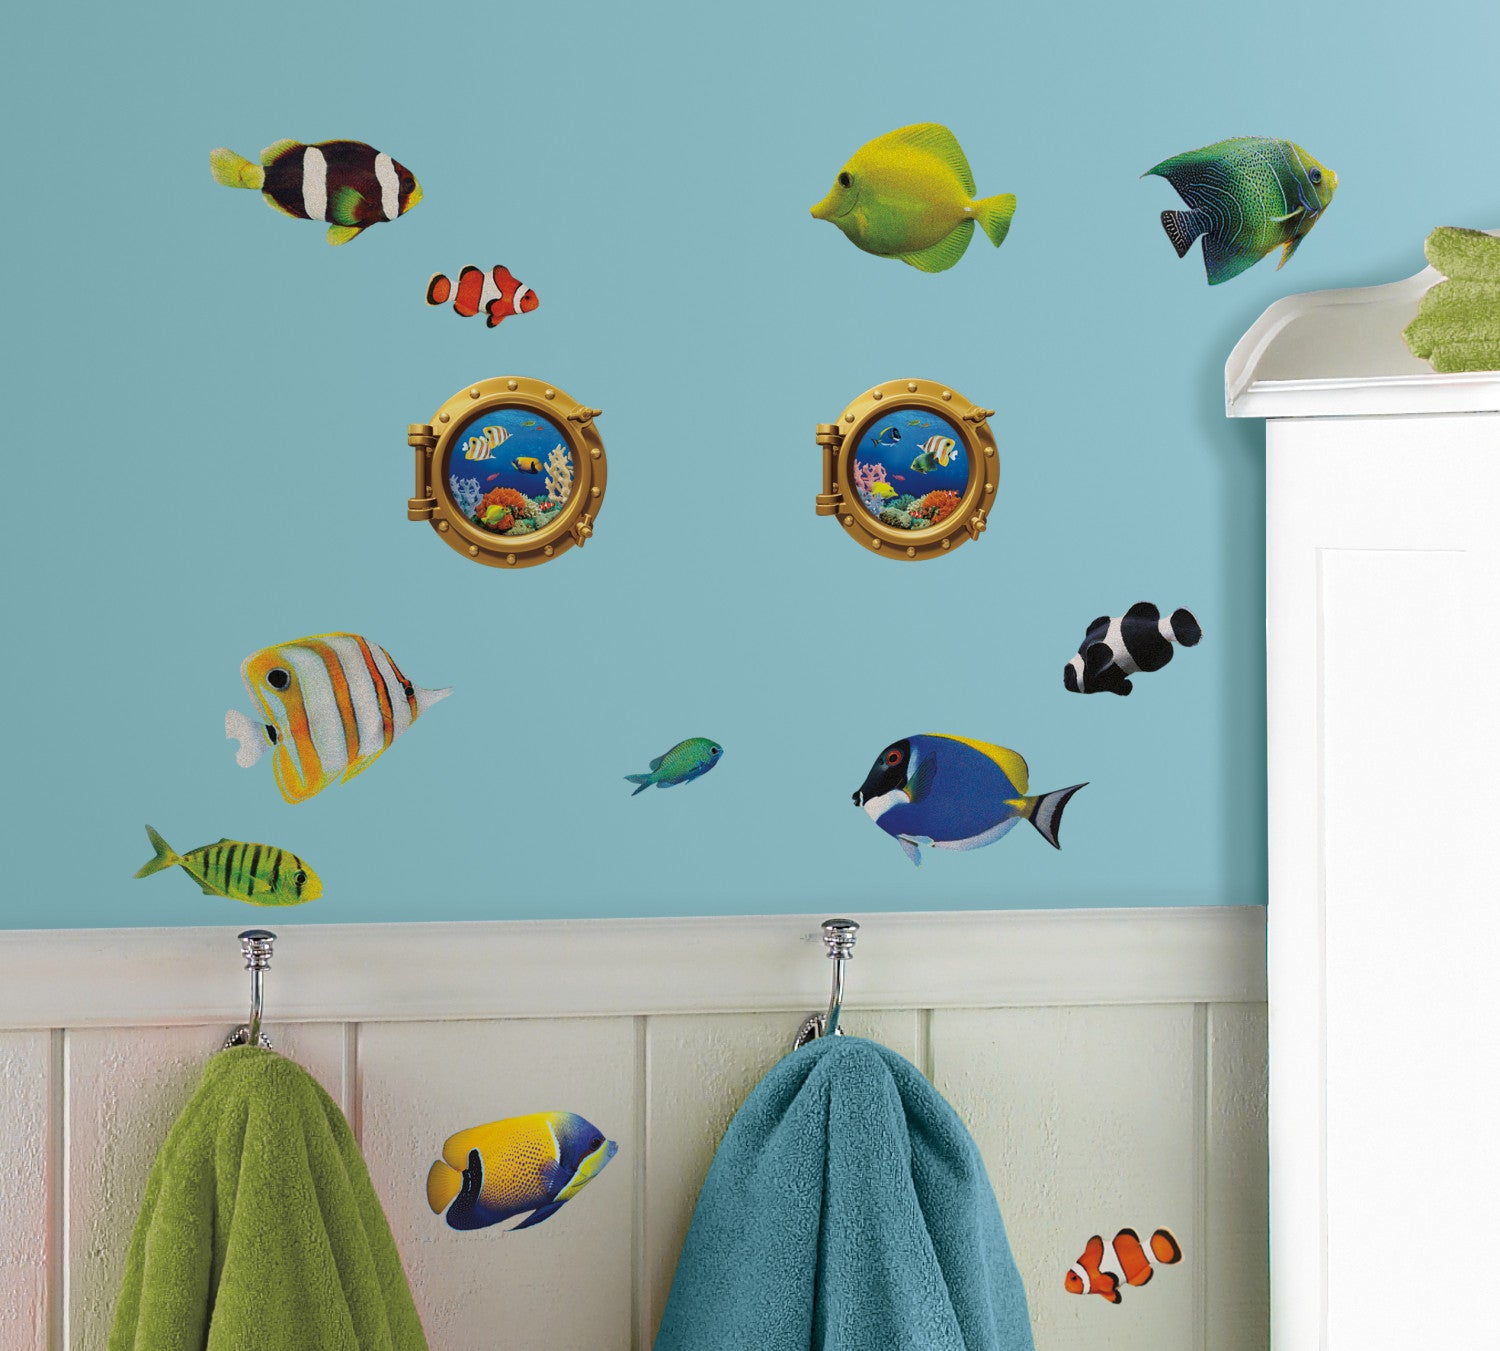 Fish Wall Decals With Lenticular Port Hole Peel U0026 Stick Wall Decals Image